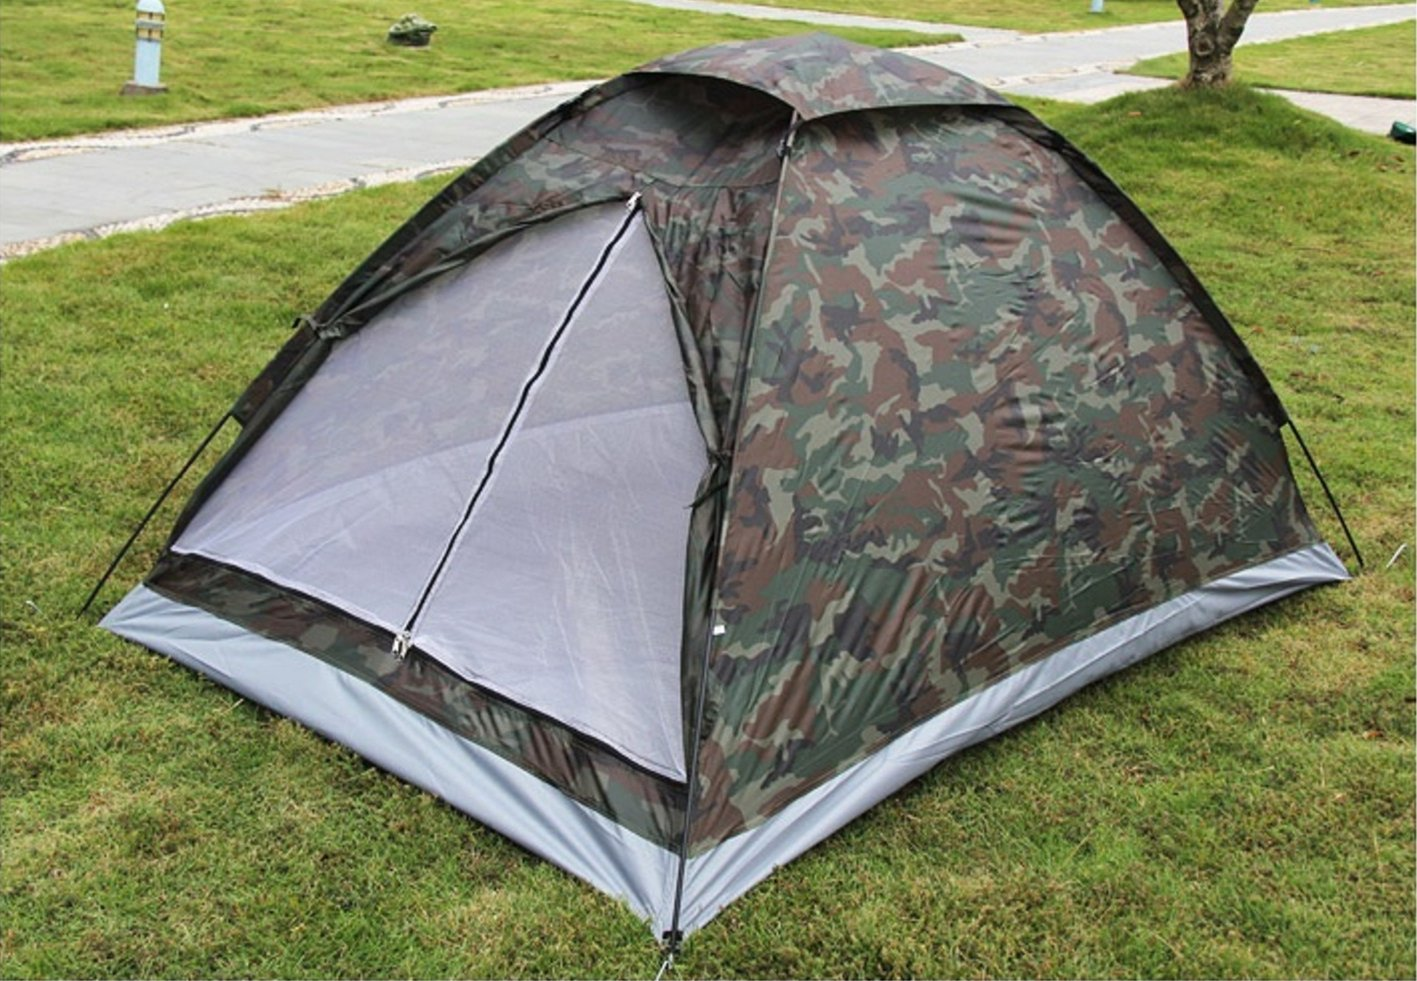 LifeVC Ultralight Camping Tent for 2 Person With Carry Bag,Portable Outdoor Hiking Backpacking Tent Lightweight(Color:Camouflage)